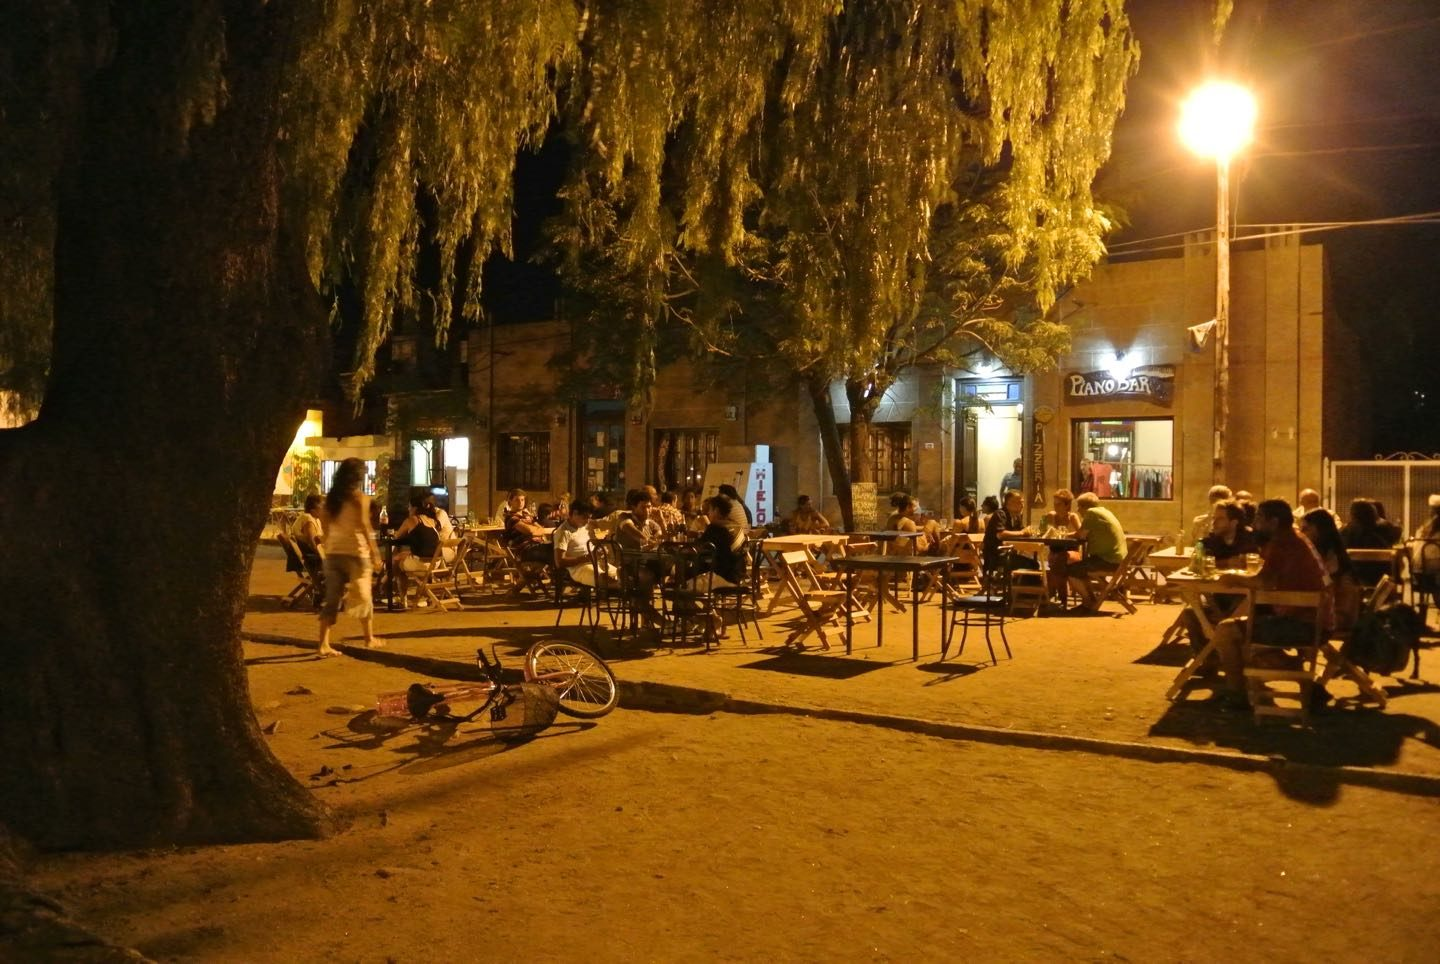 Nightlife in San Marcos Sierra.